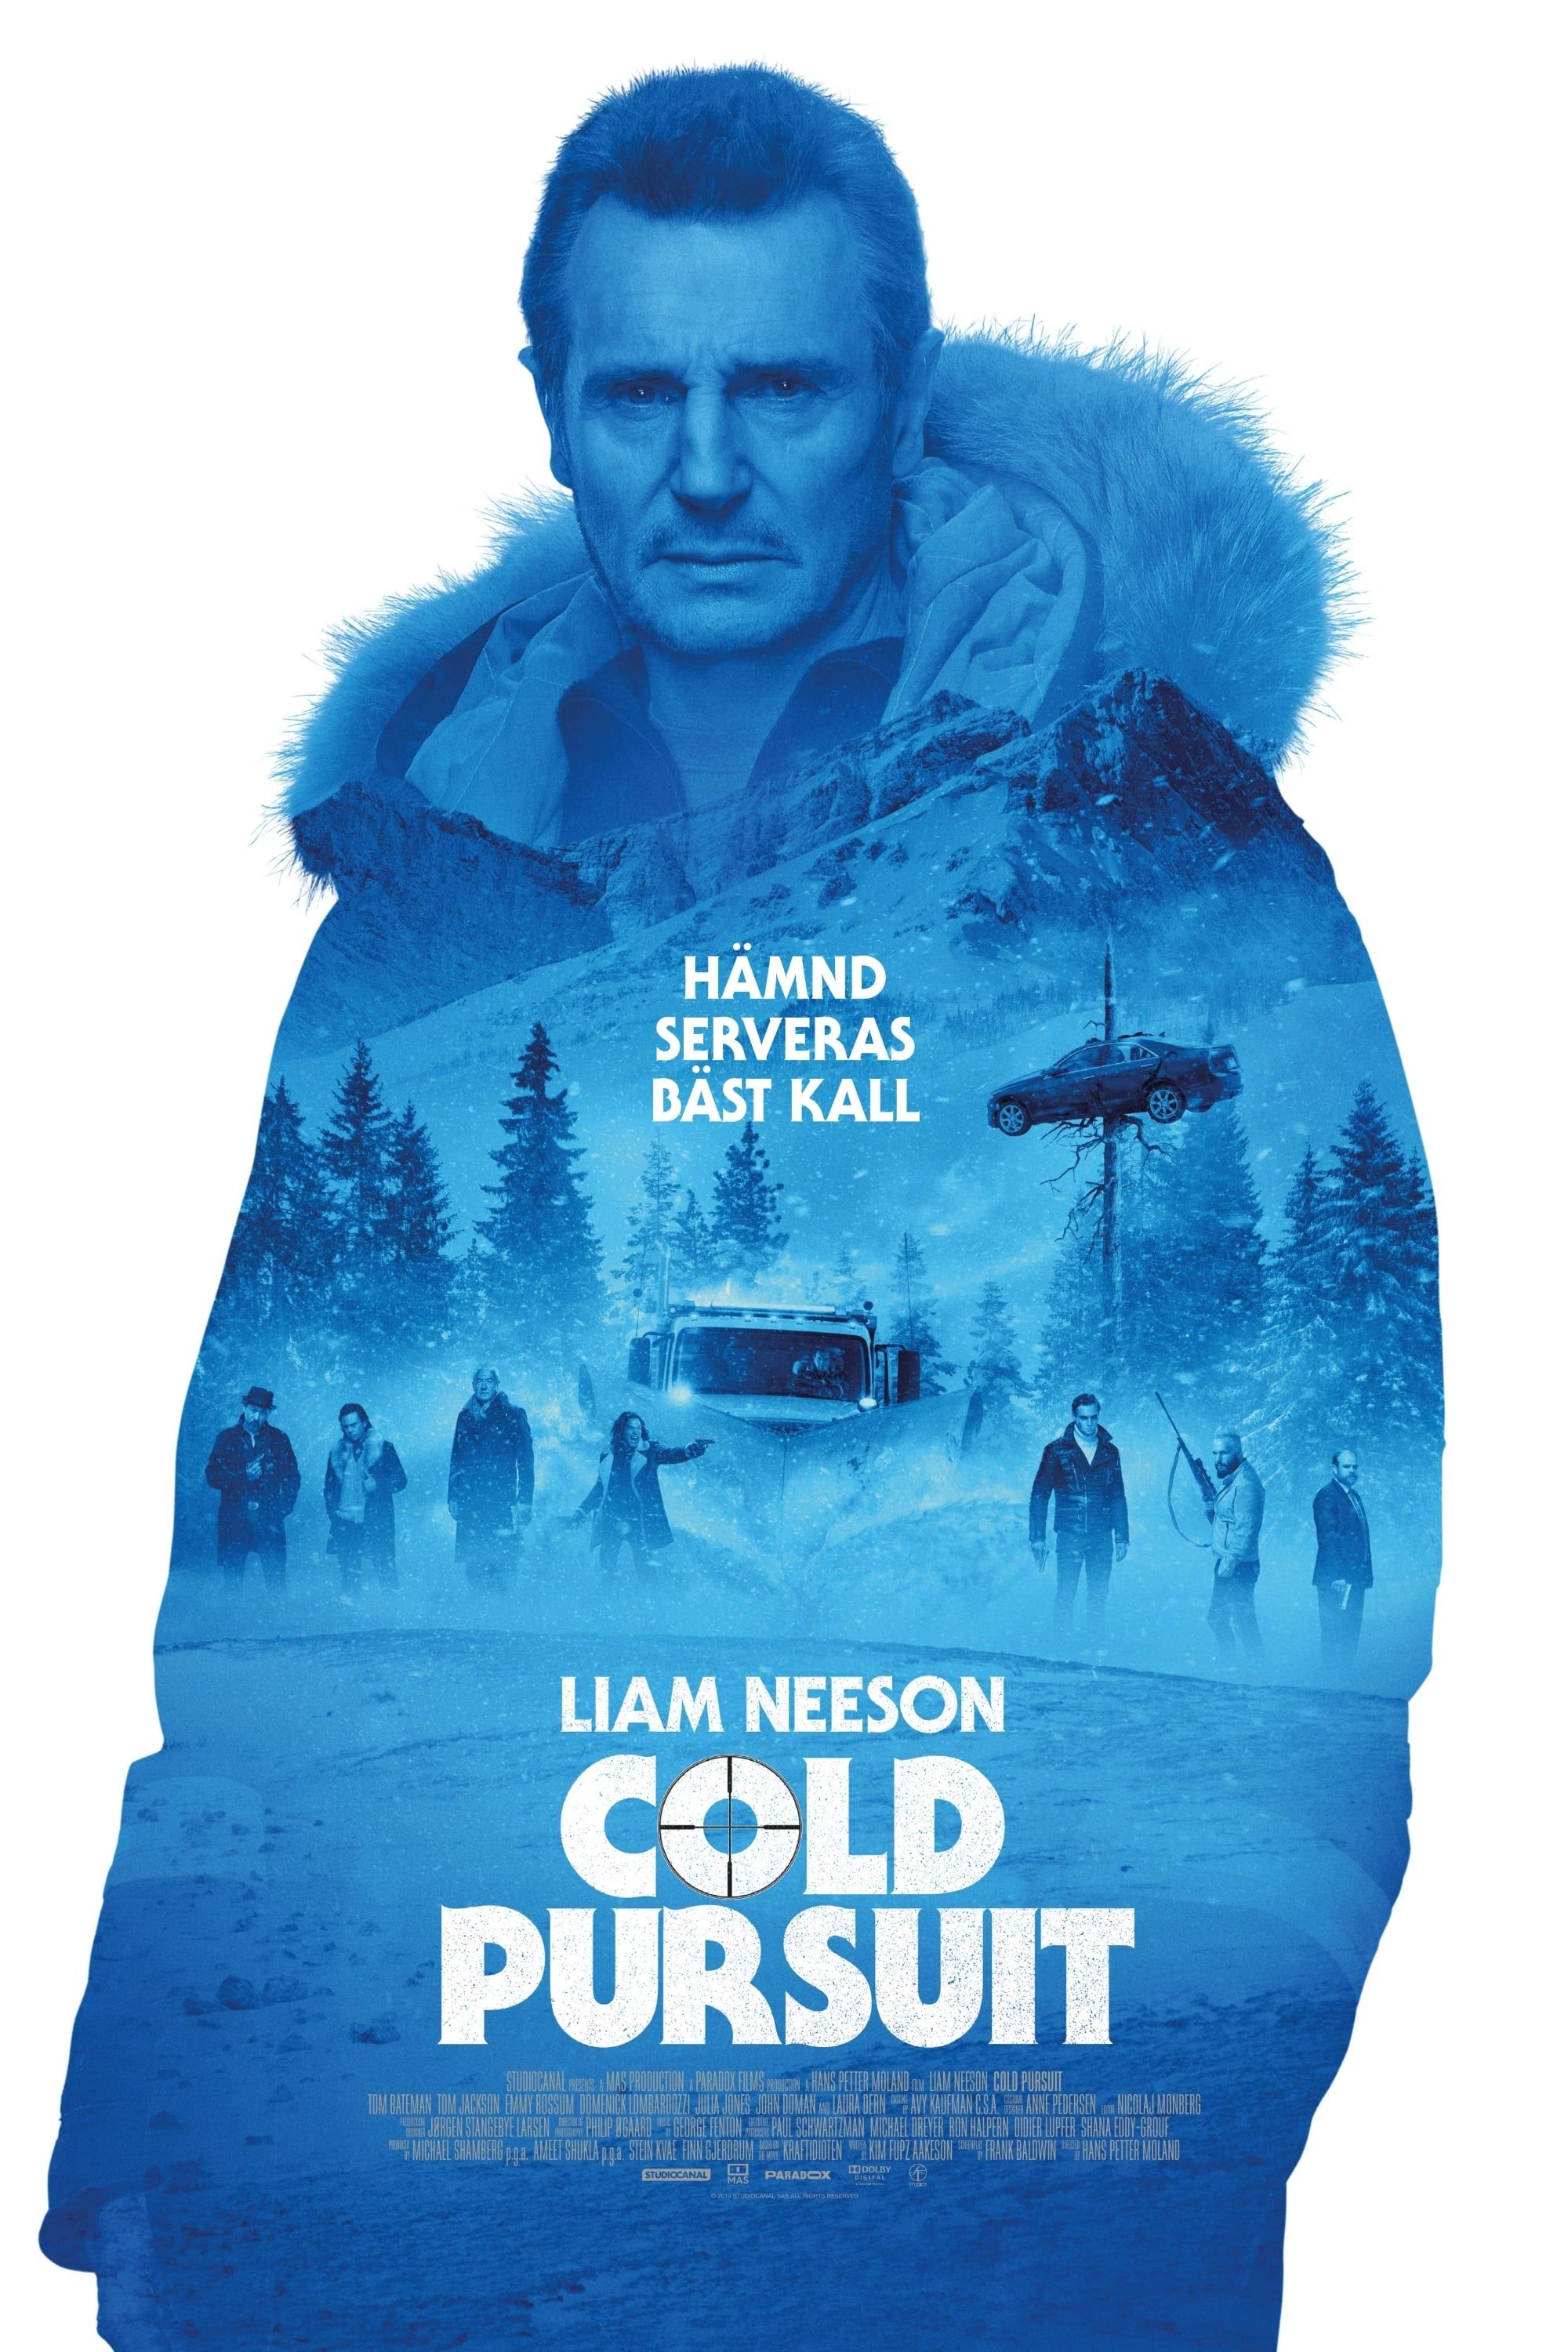 Cold Pursuit FULL MOVIE HD1080p Sub English Play For FREE